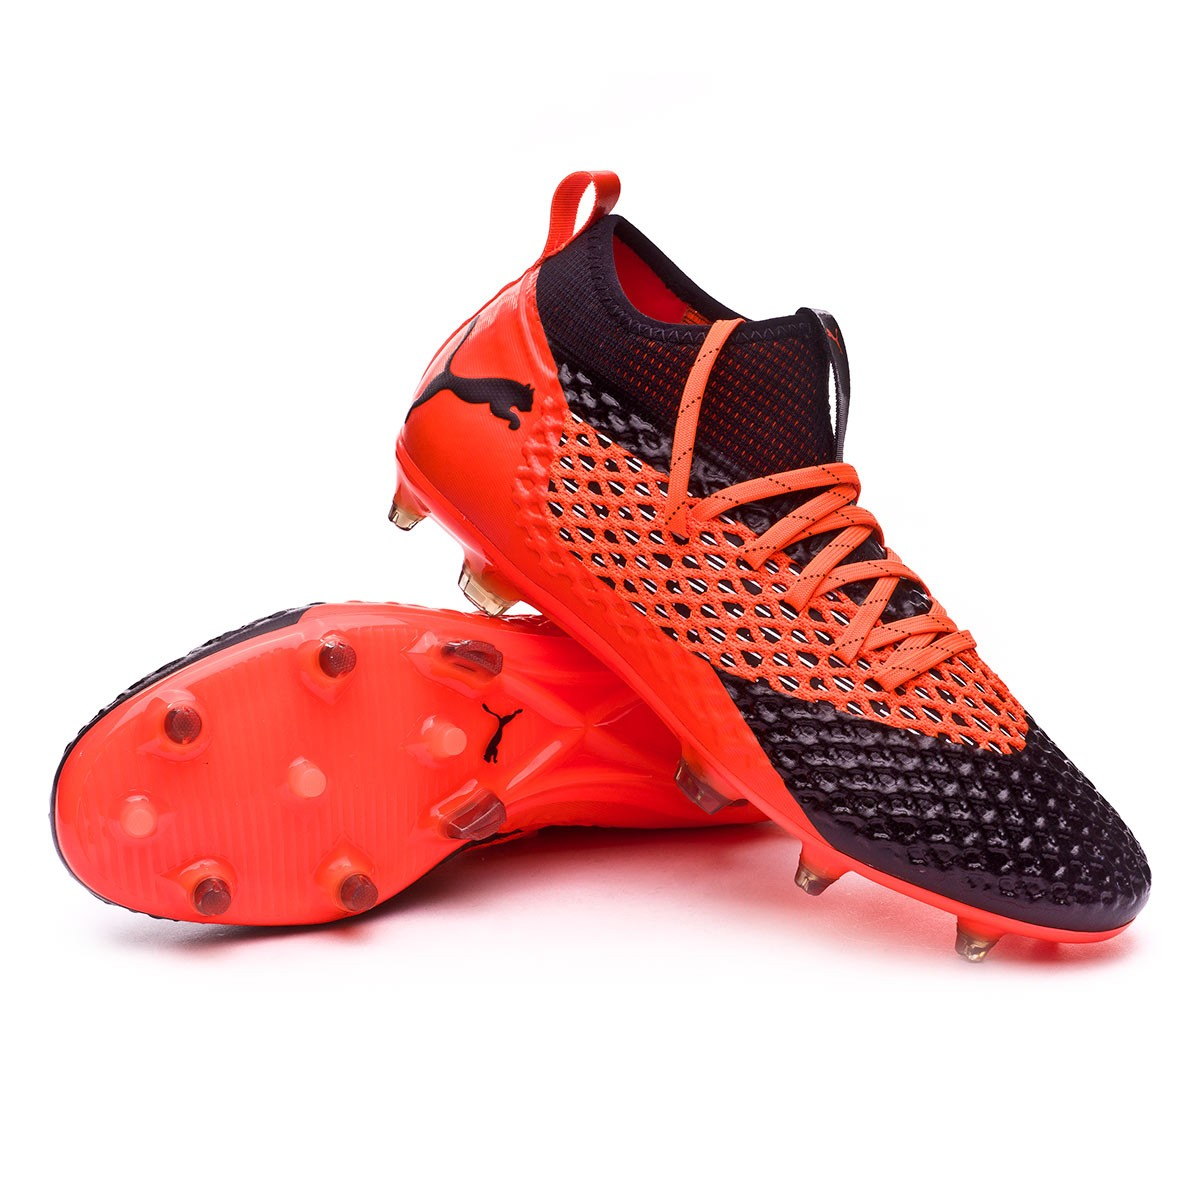 a208bf4b3eee Boot Puma Future 2.2 Netfit FG AG Puma black-Shocking orange ...